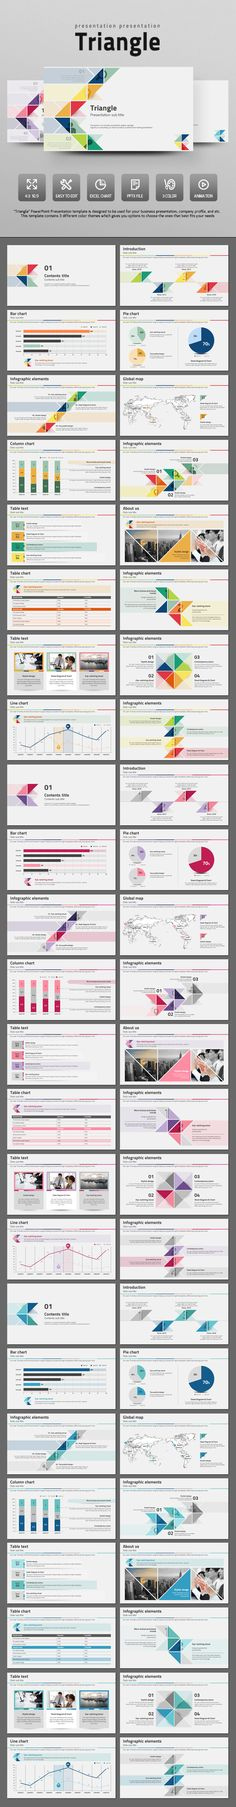 "Buy Simple Triangle by on GraphicRiver. ""Triangle"" PowerPoint Presentation template is designed to be used for your general business presentation, company pr. Powerpoint Presentation Themes, Design Presentation, Business Presentation, Powerpoint Presentations, Web Design, Slide Design, Book Design, Layout Design, Template Brochure"